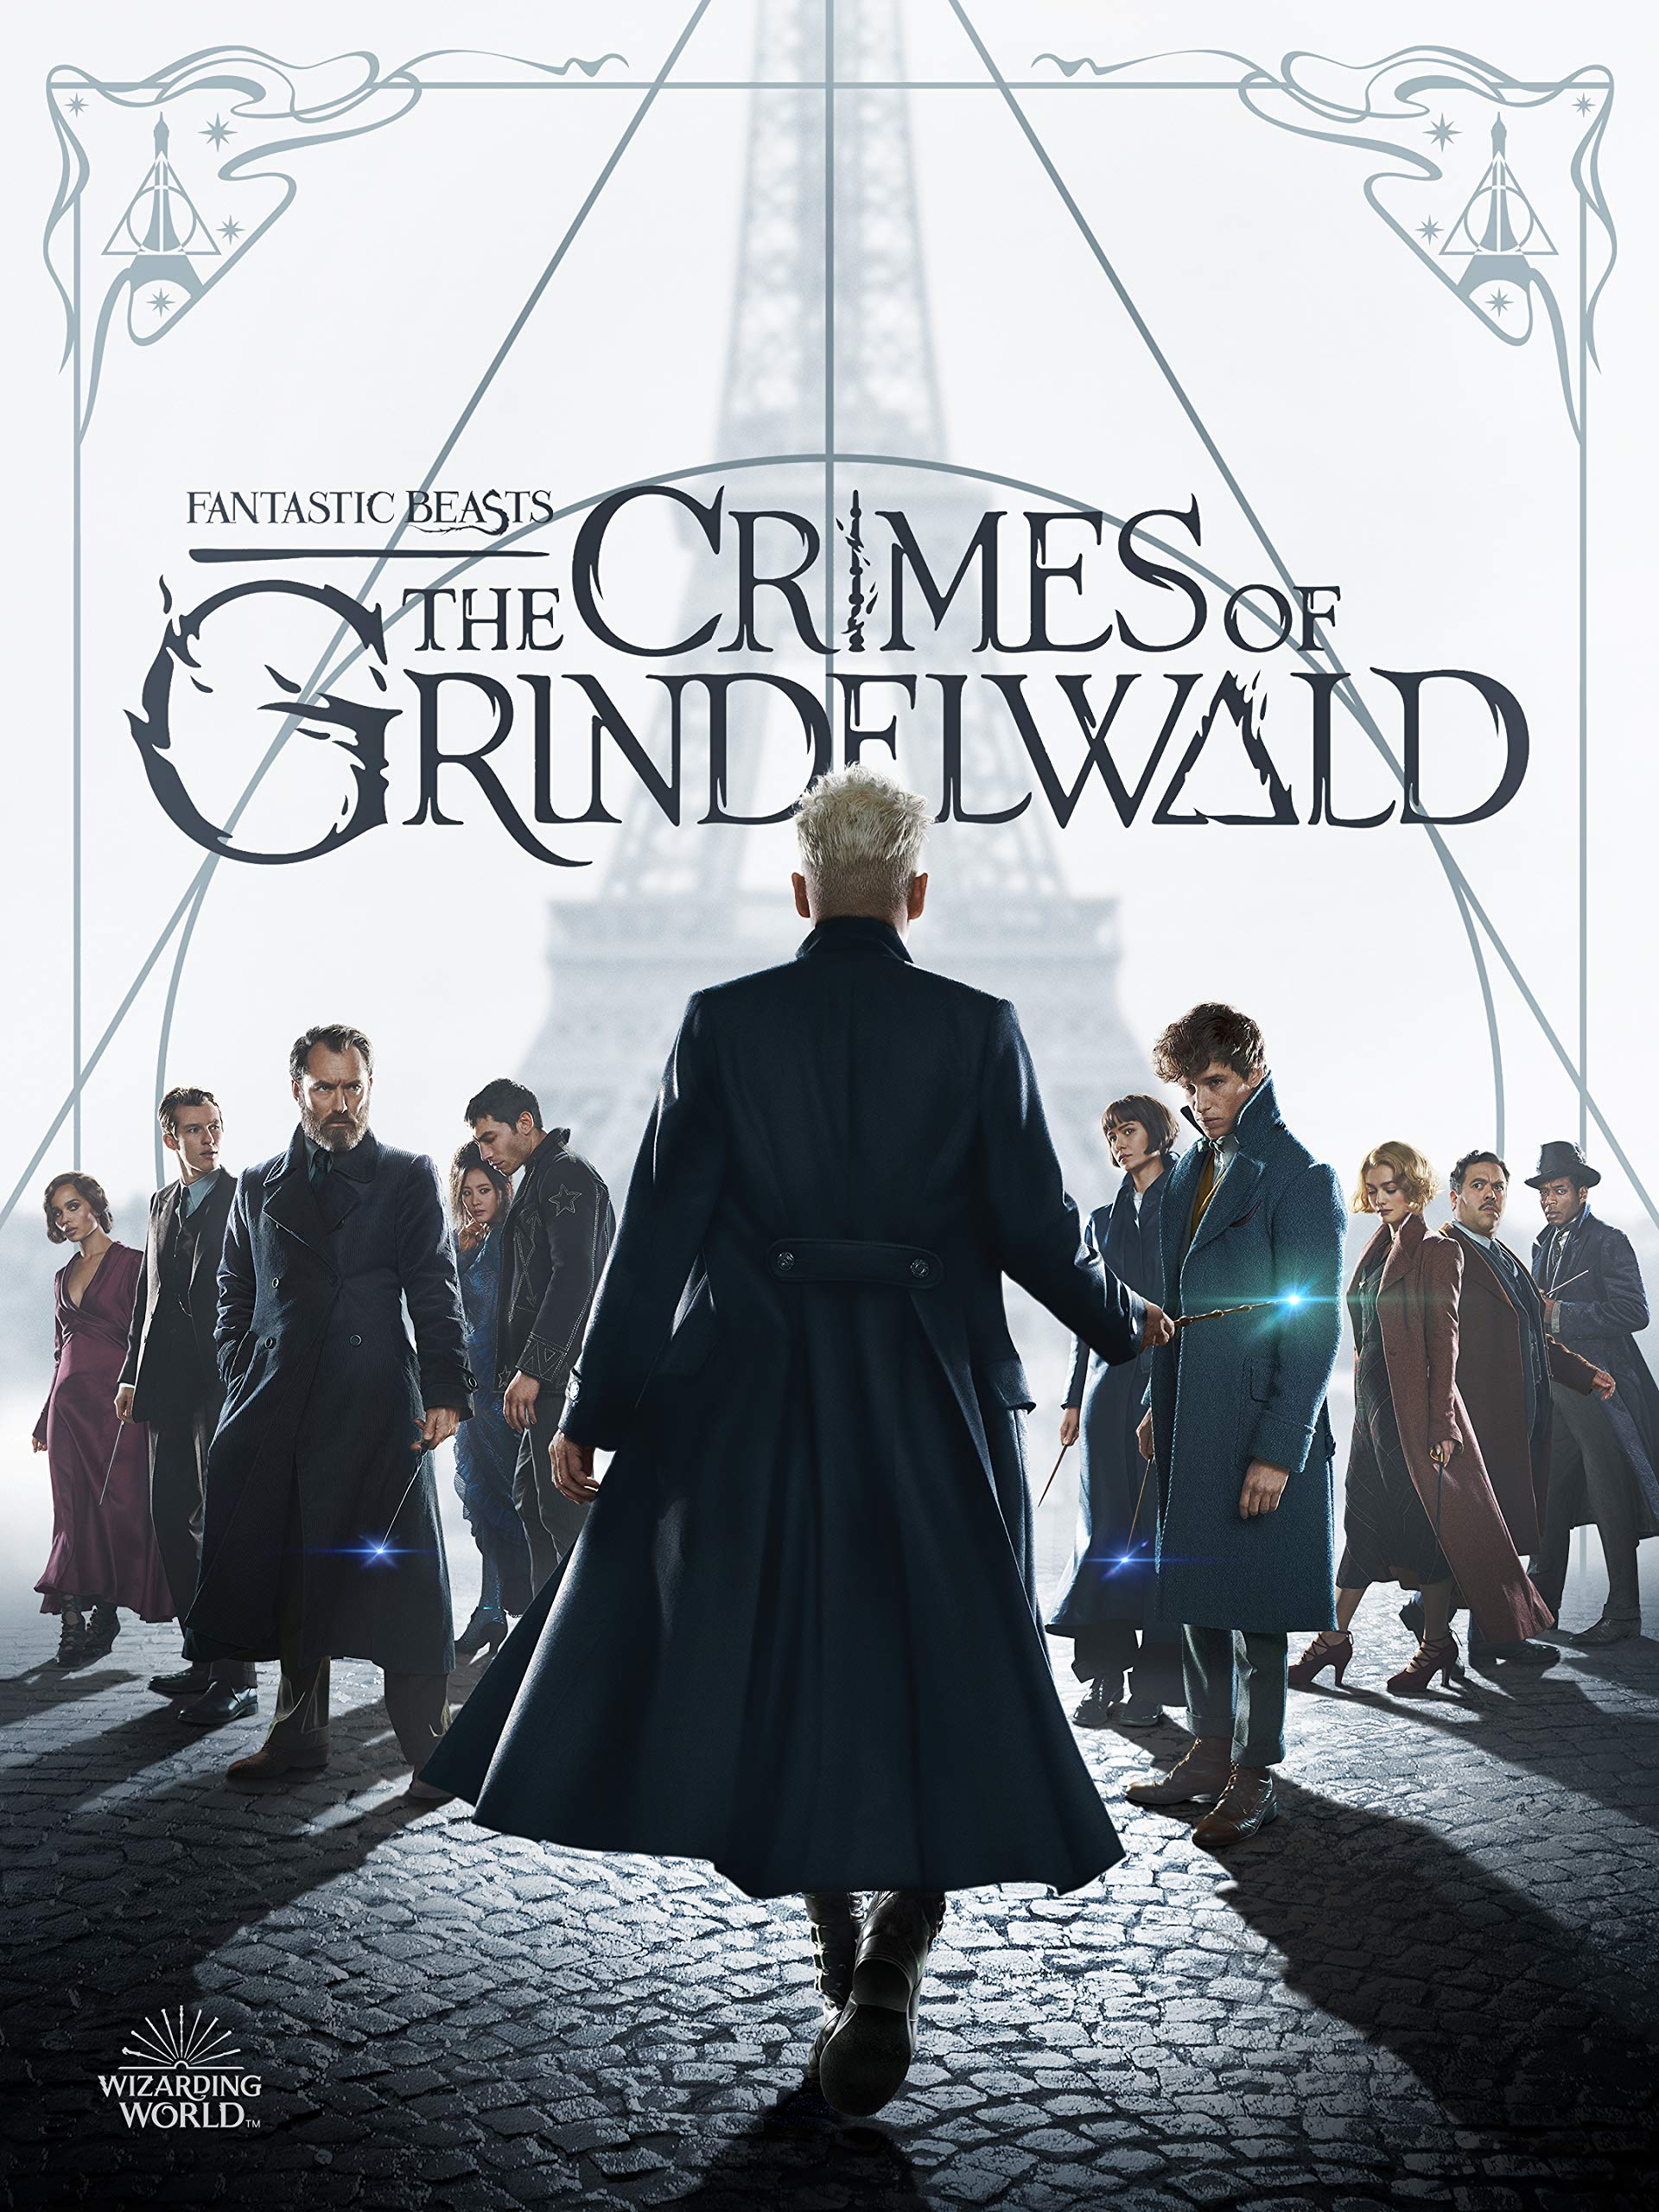 4K Blu-ray : Fantastic Beasts: The Crimes Of Grindelwald (With Blu-ray, 4K Mastering, Digital Copy)